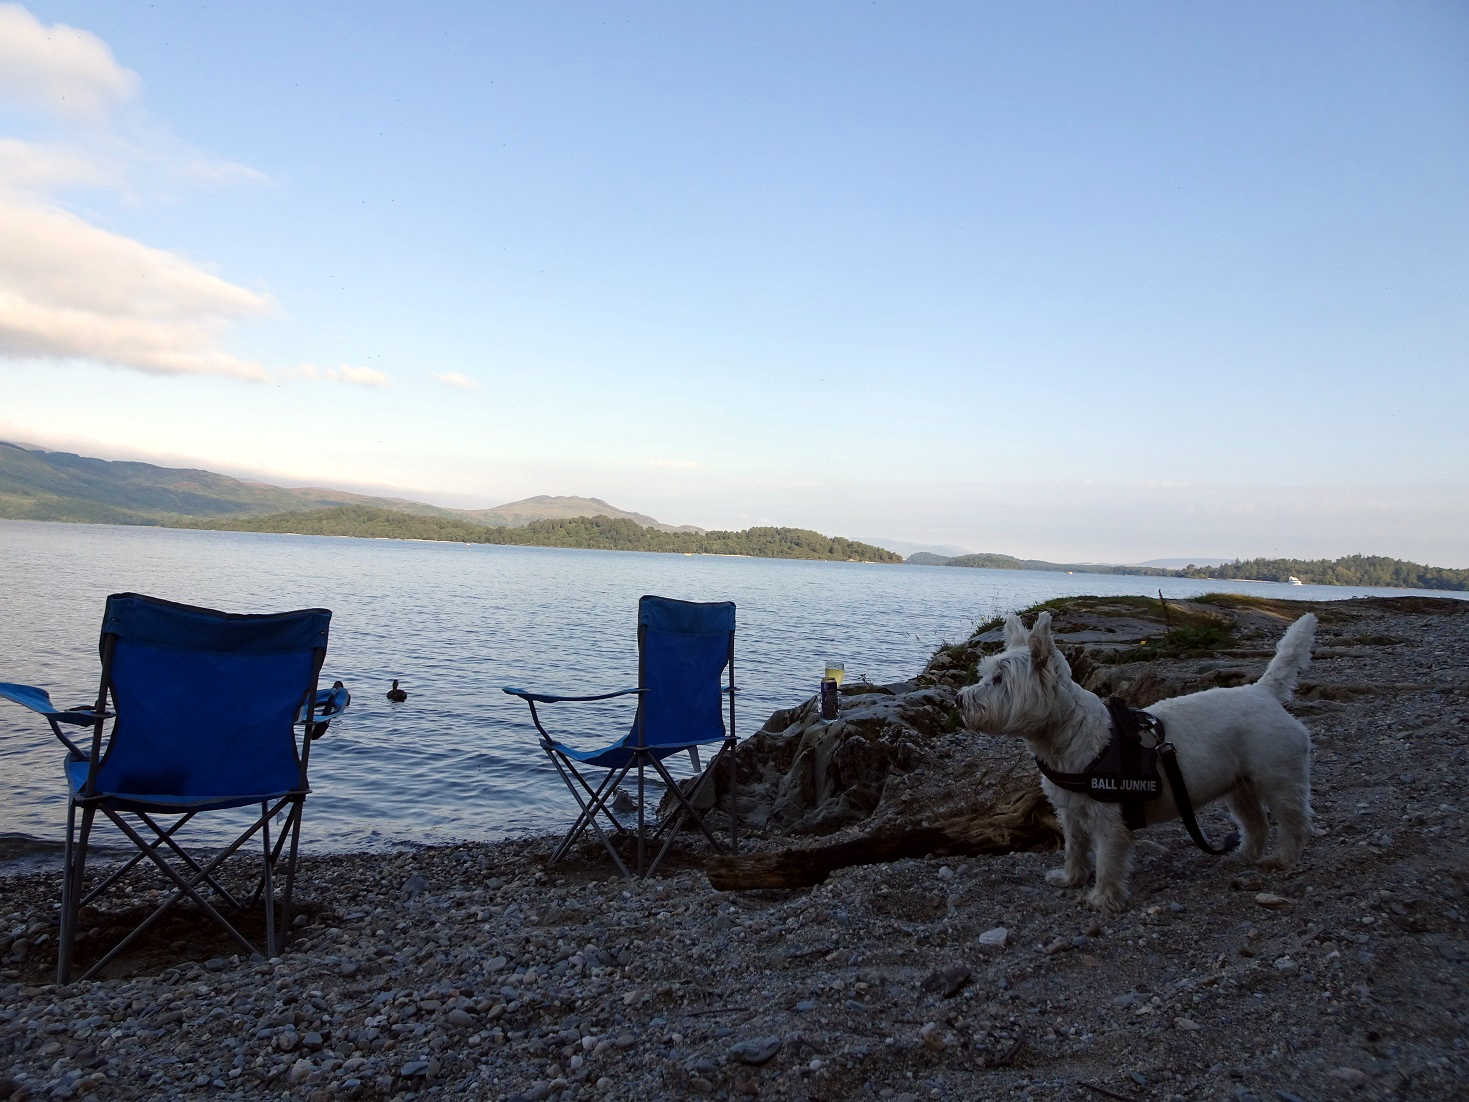 Poppy the westie at Loch Lomond for evening drinks